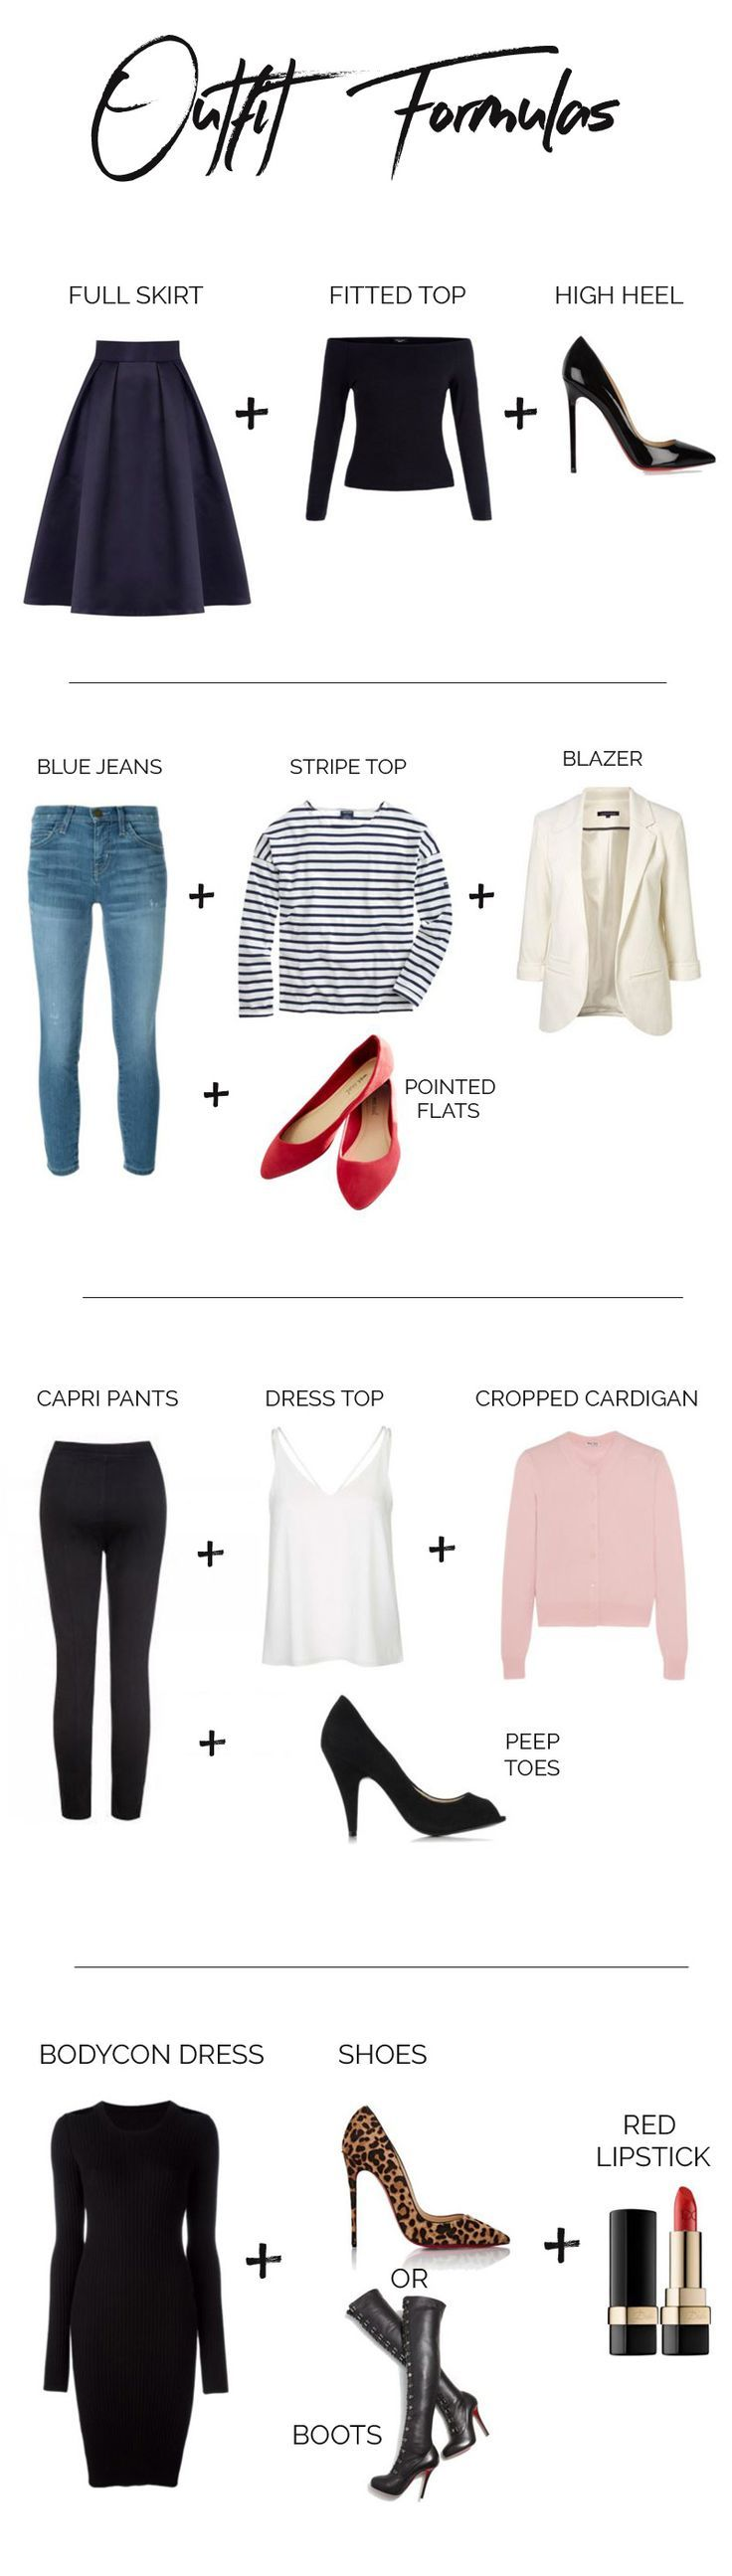 four outfit formulas that never fail: easy outfit ideas that will work well with capsule wardrobes and make getting dressed a whole lot easier!